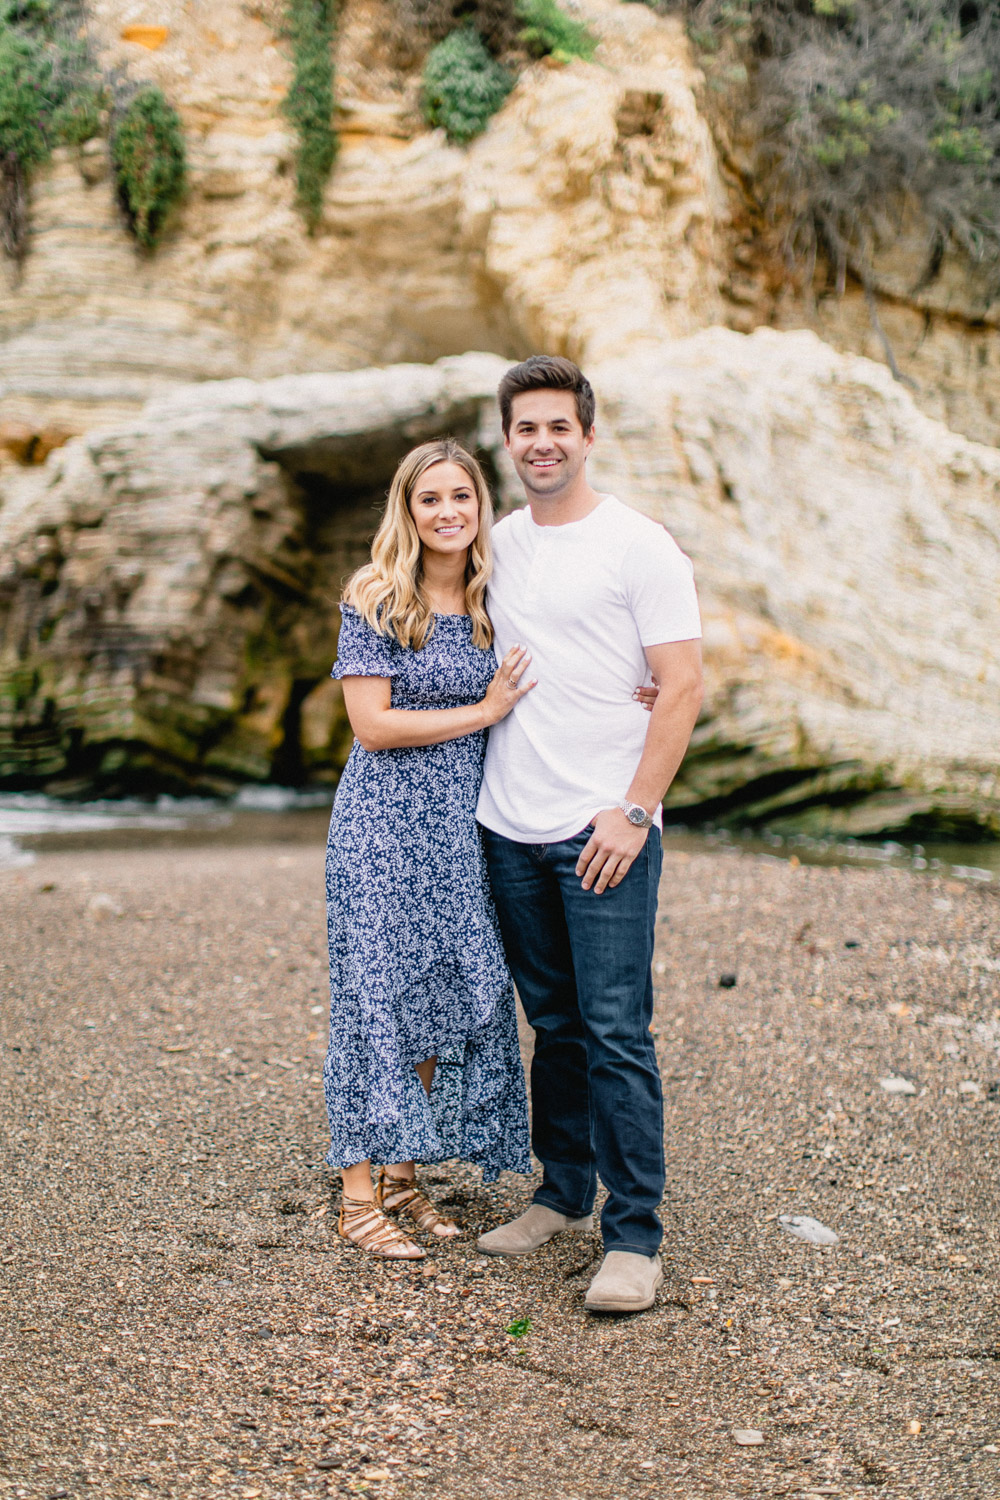 Ashley-Rae-Studio-San-Luis-Obispo-Engagement-Session-Santa-Barbara-Wedding-Photographer-137.jpg